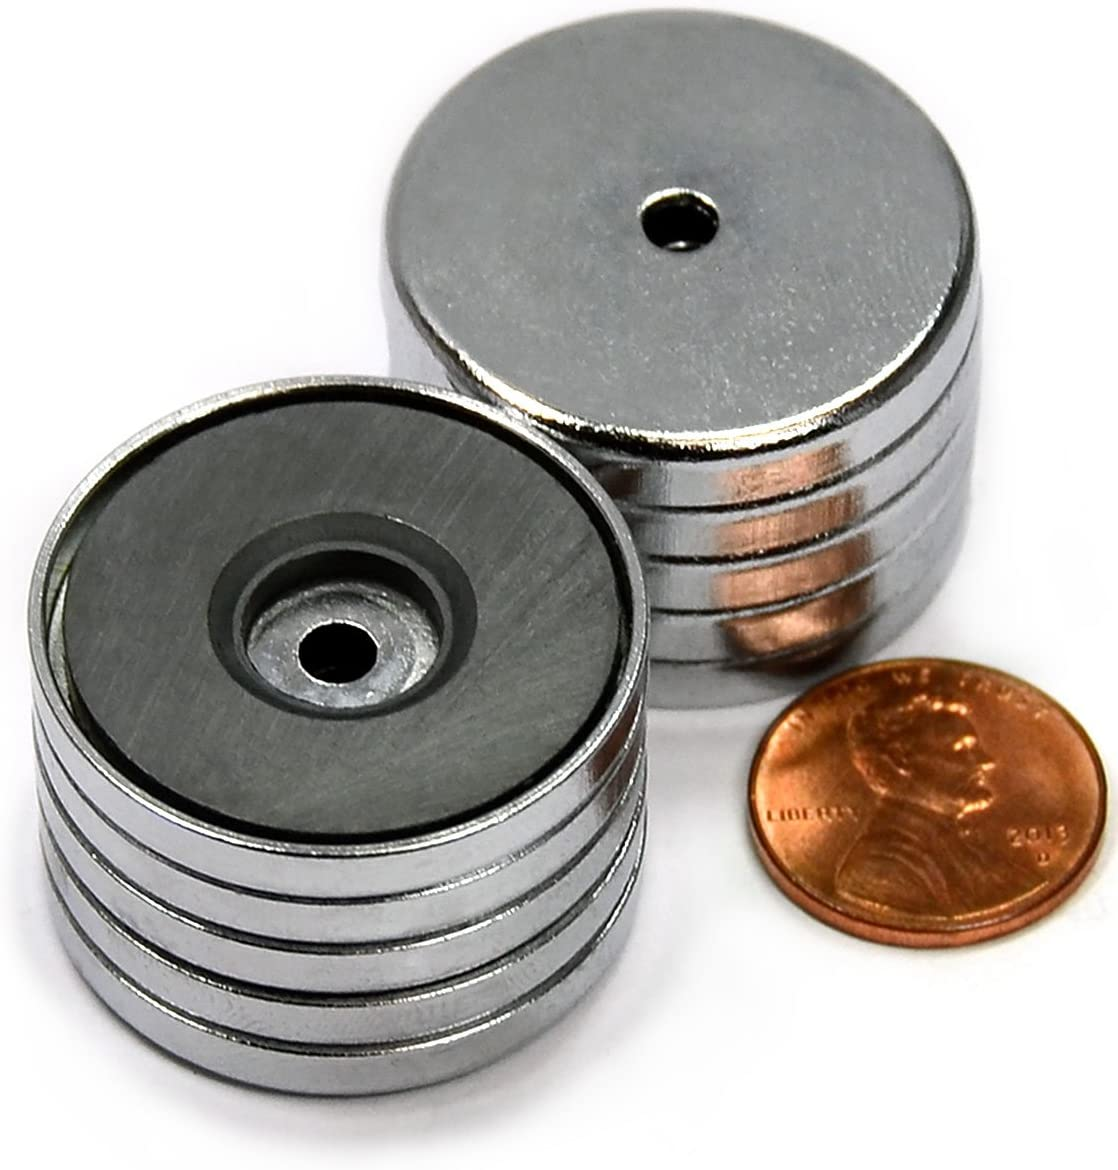 CMS Magnetics Max 52% OFF Round Base Magnet 1.26